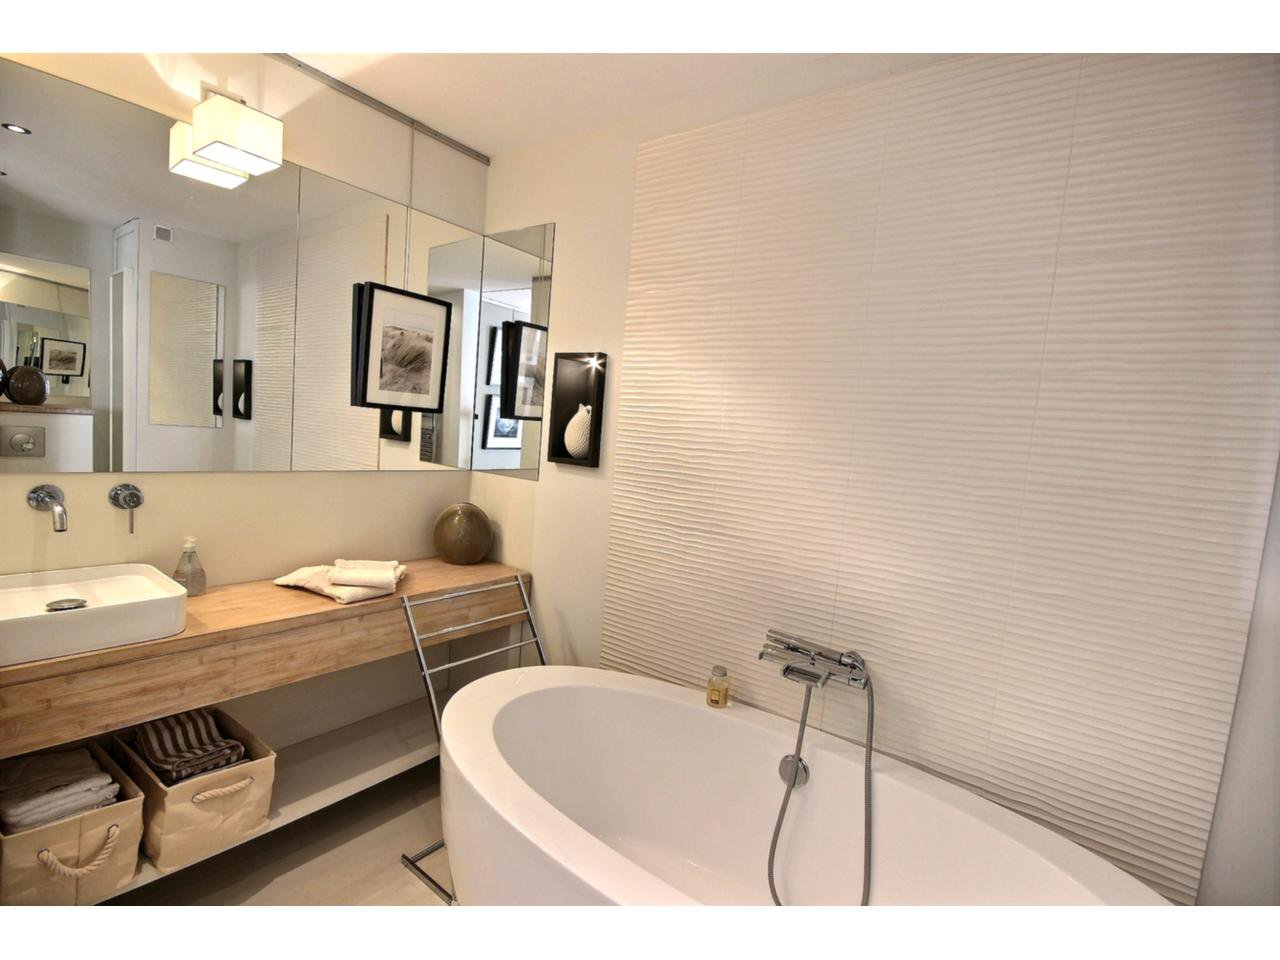 Bathroom Cannes Palm Beach property for sale with sea view